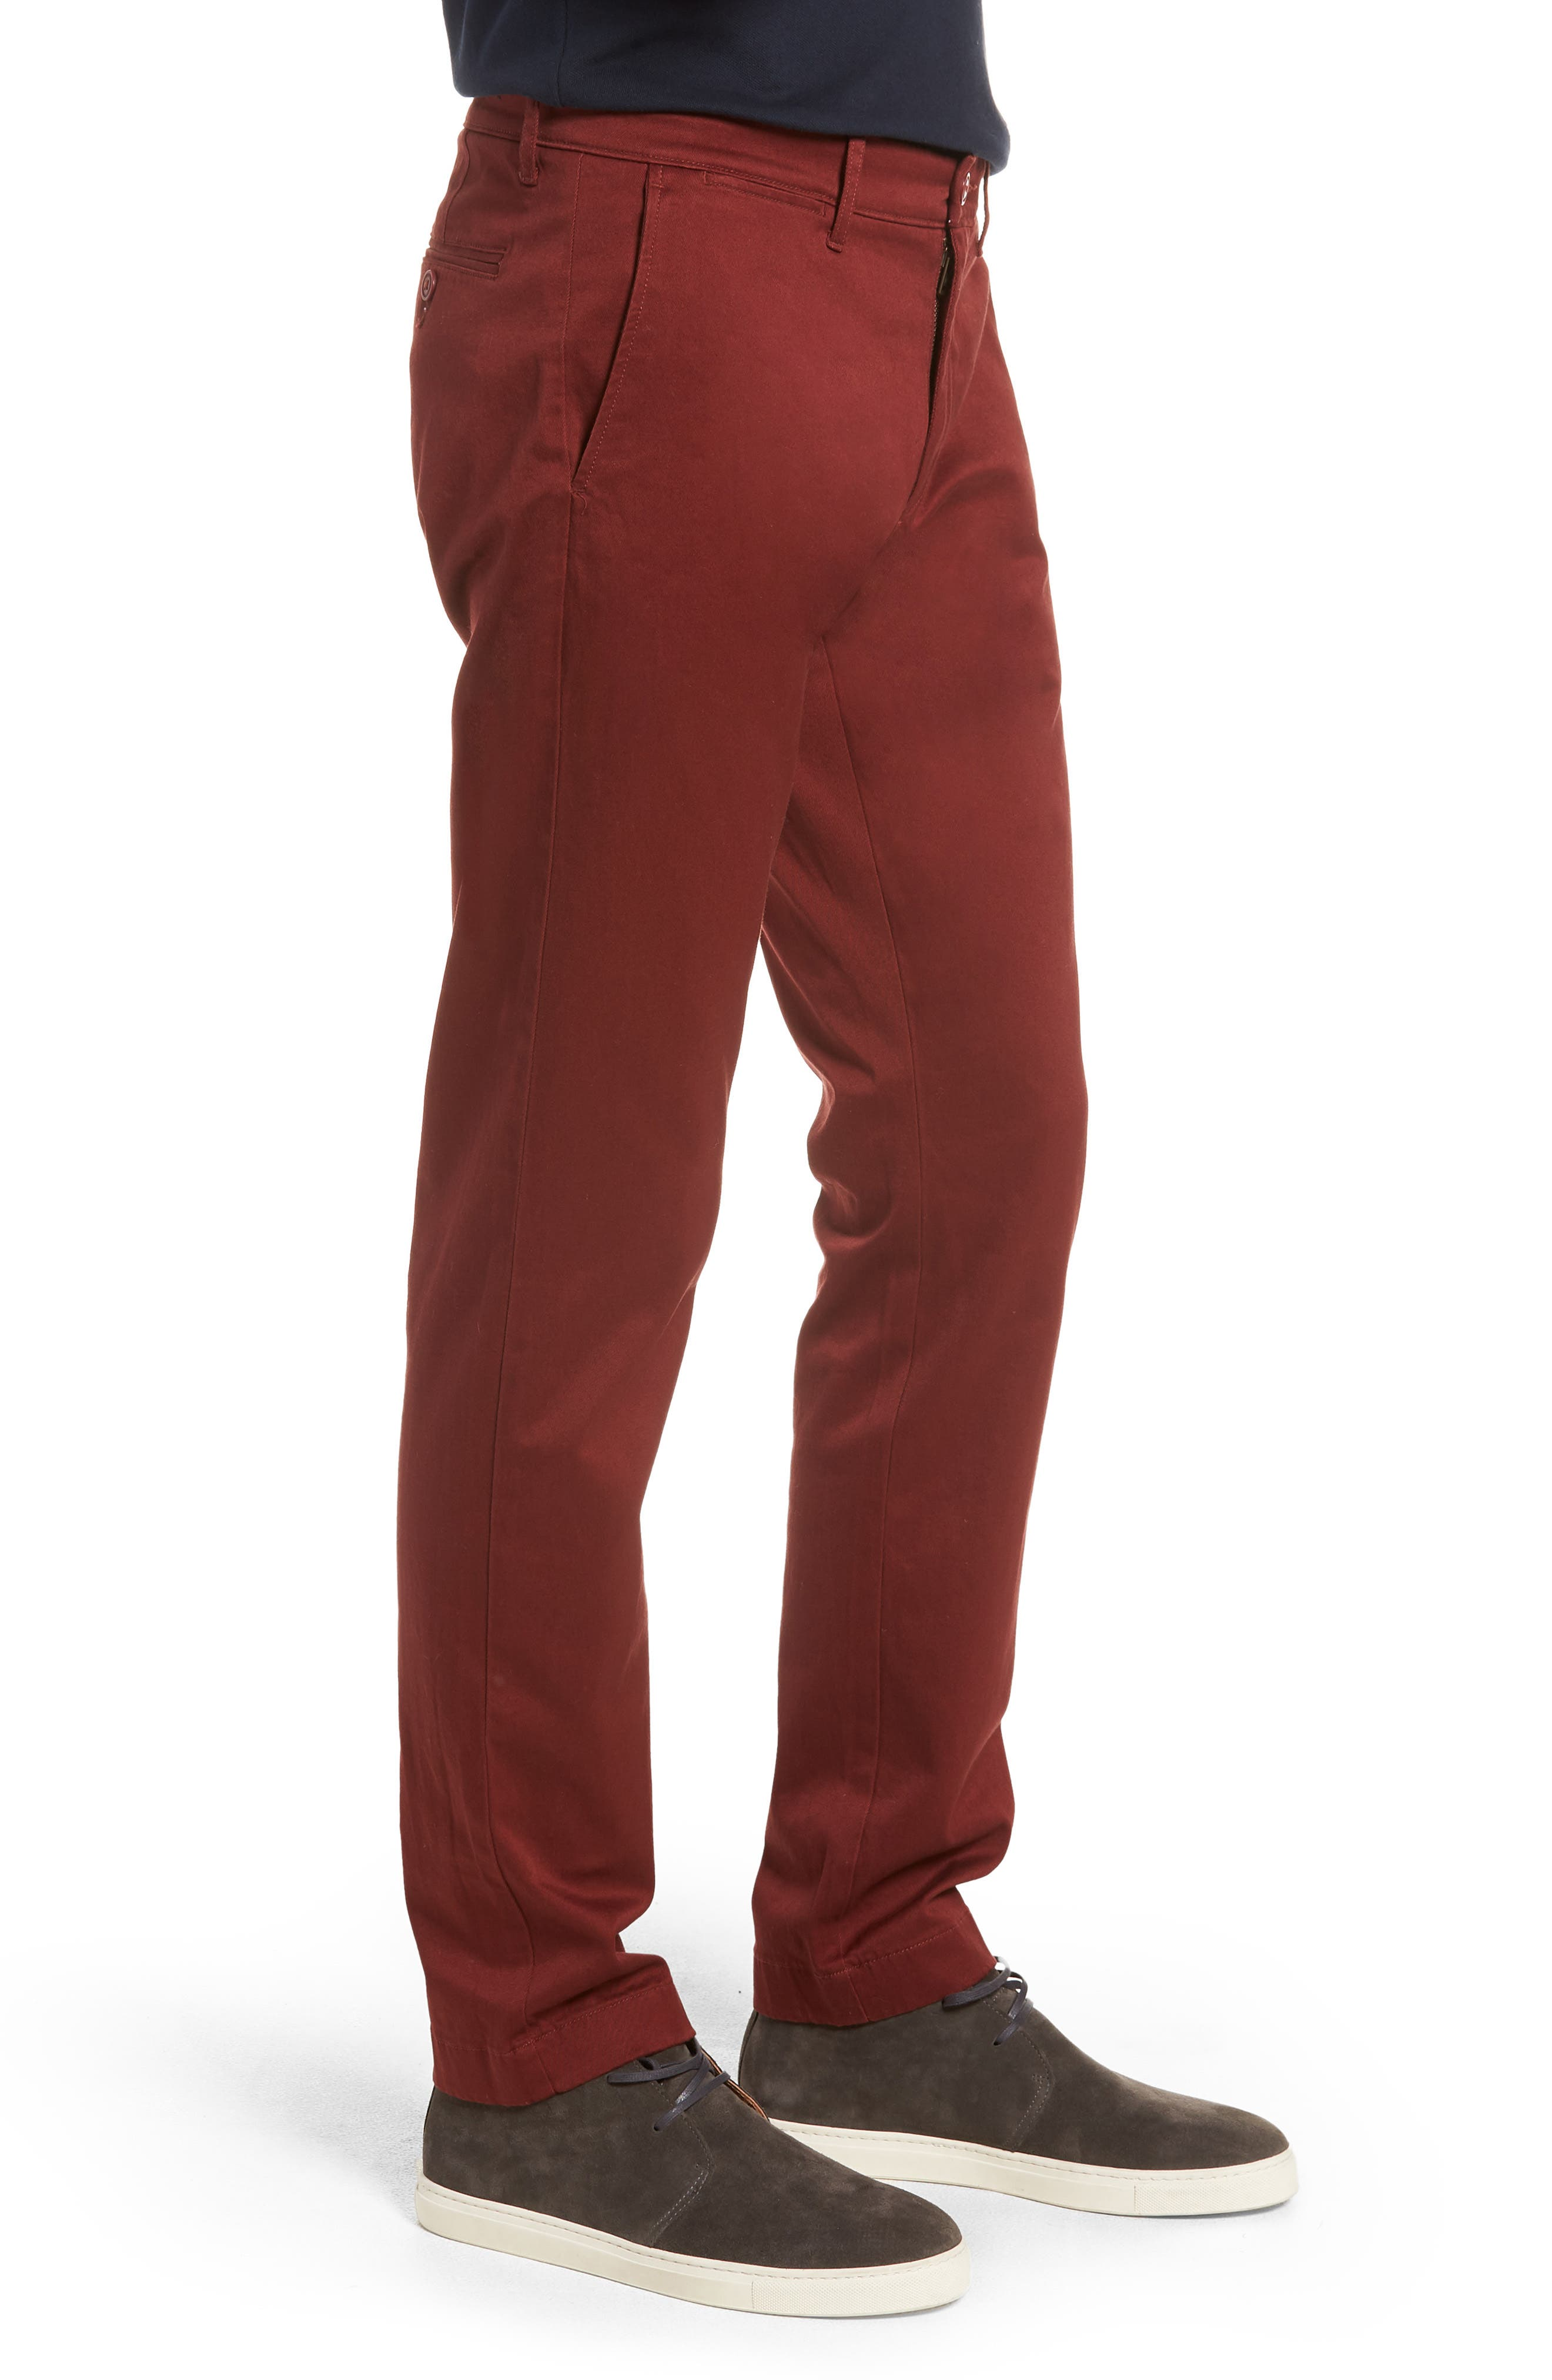 484 Slim Fit Stretch Chino Pants,                             Alternate thumbnail 29, color,